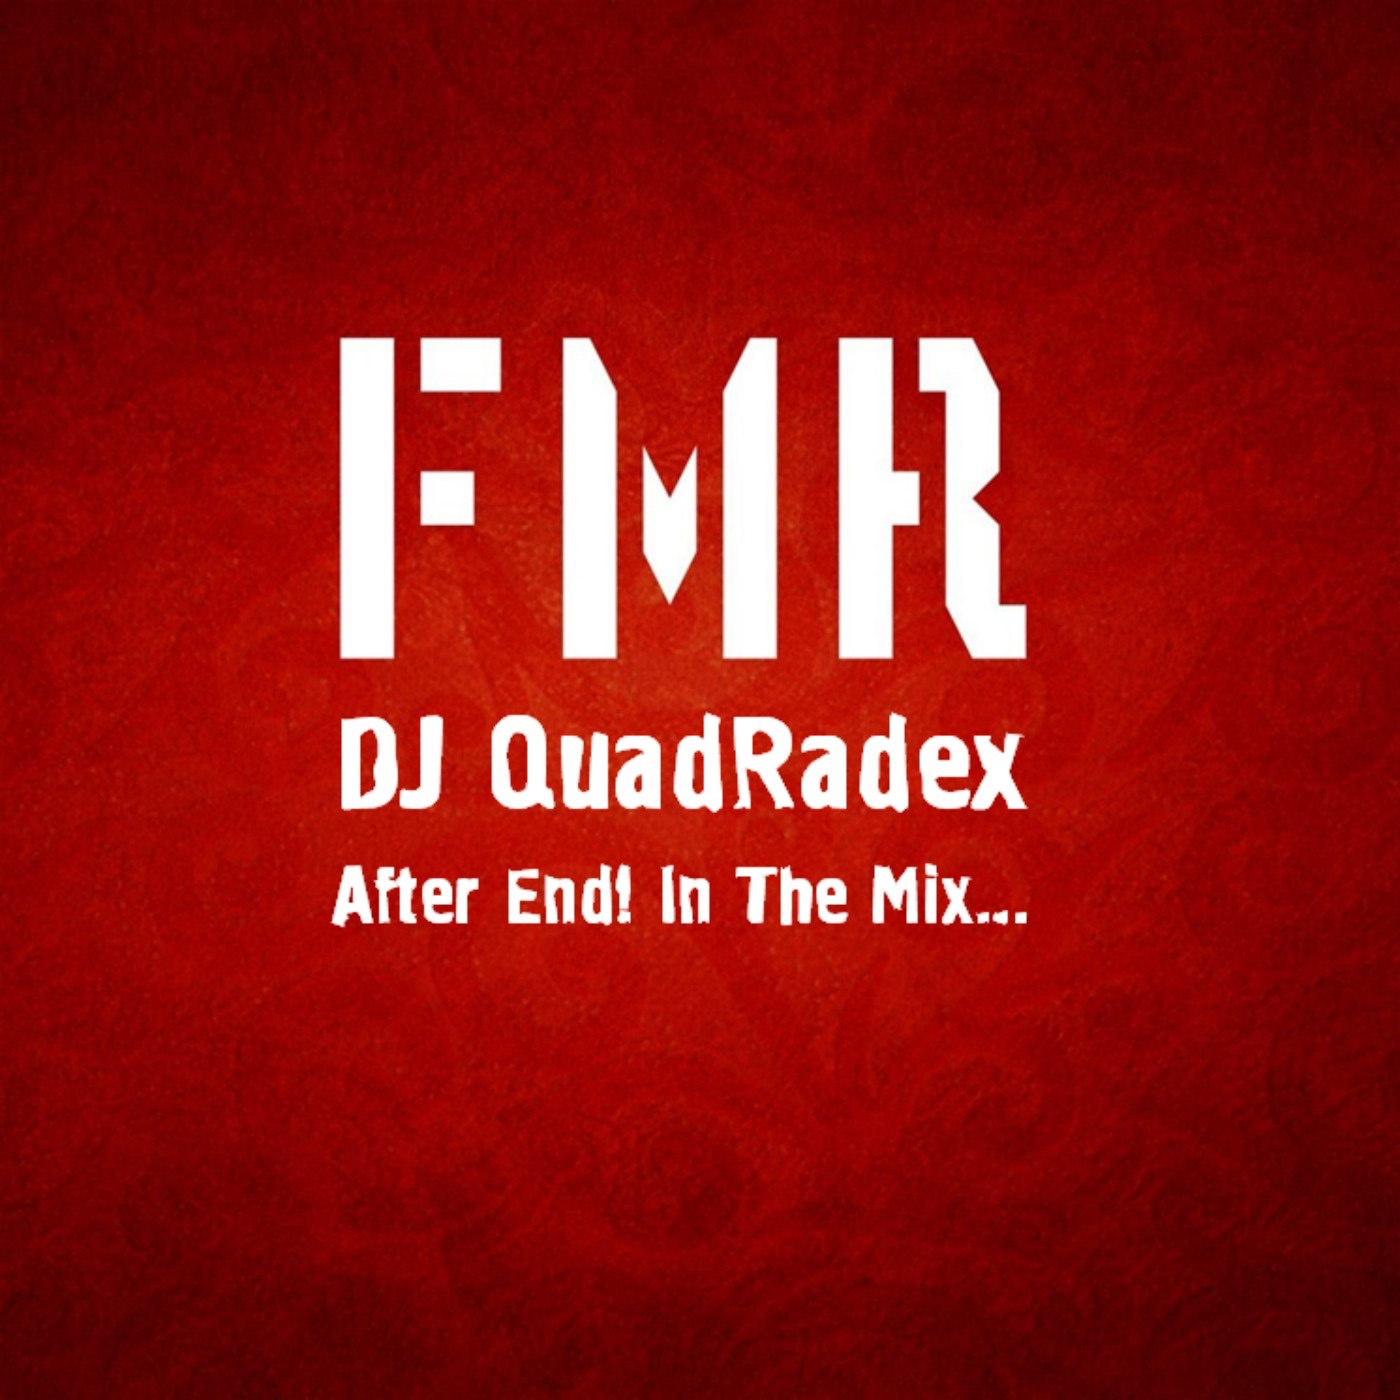 After End! In the Mix... - Single